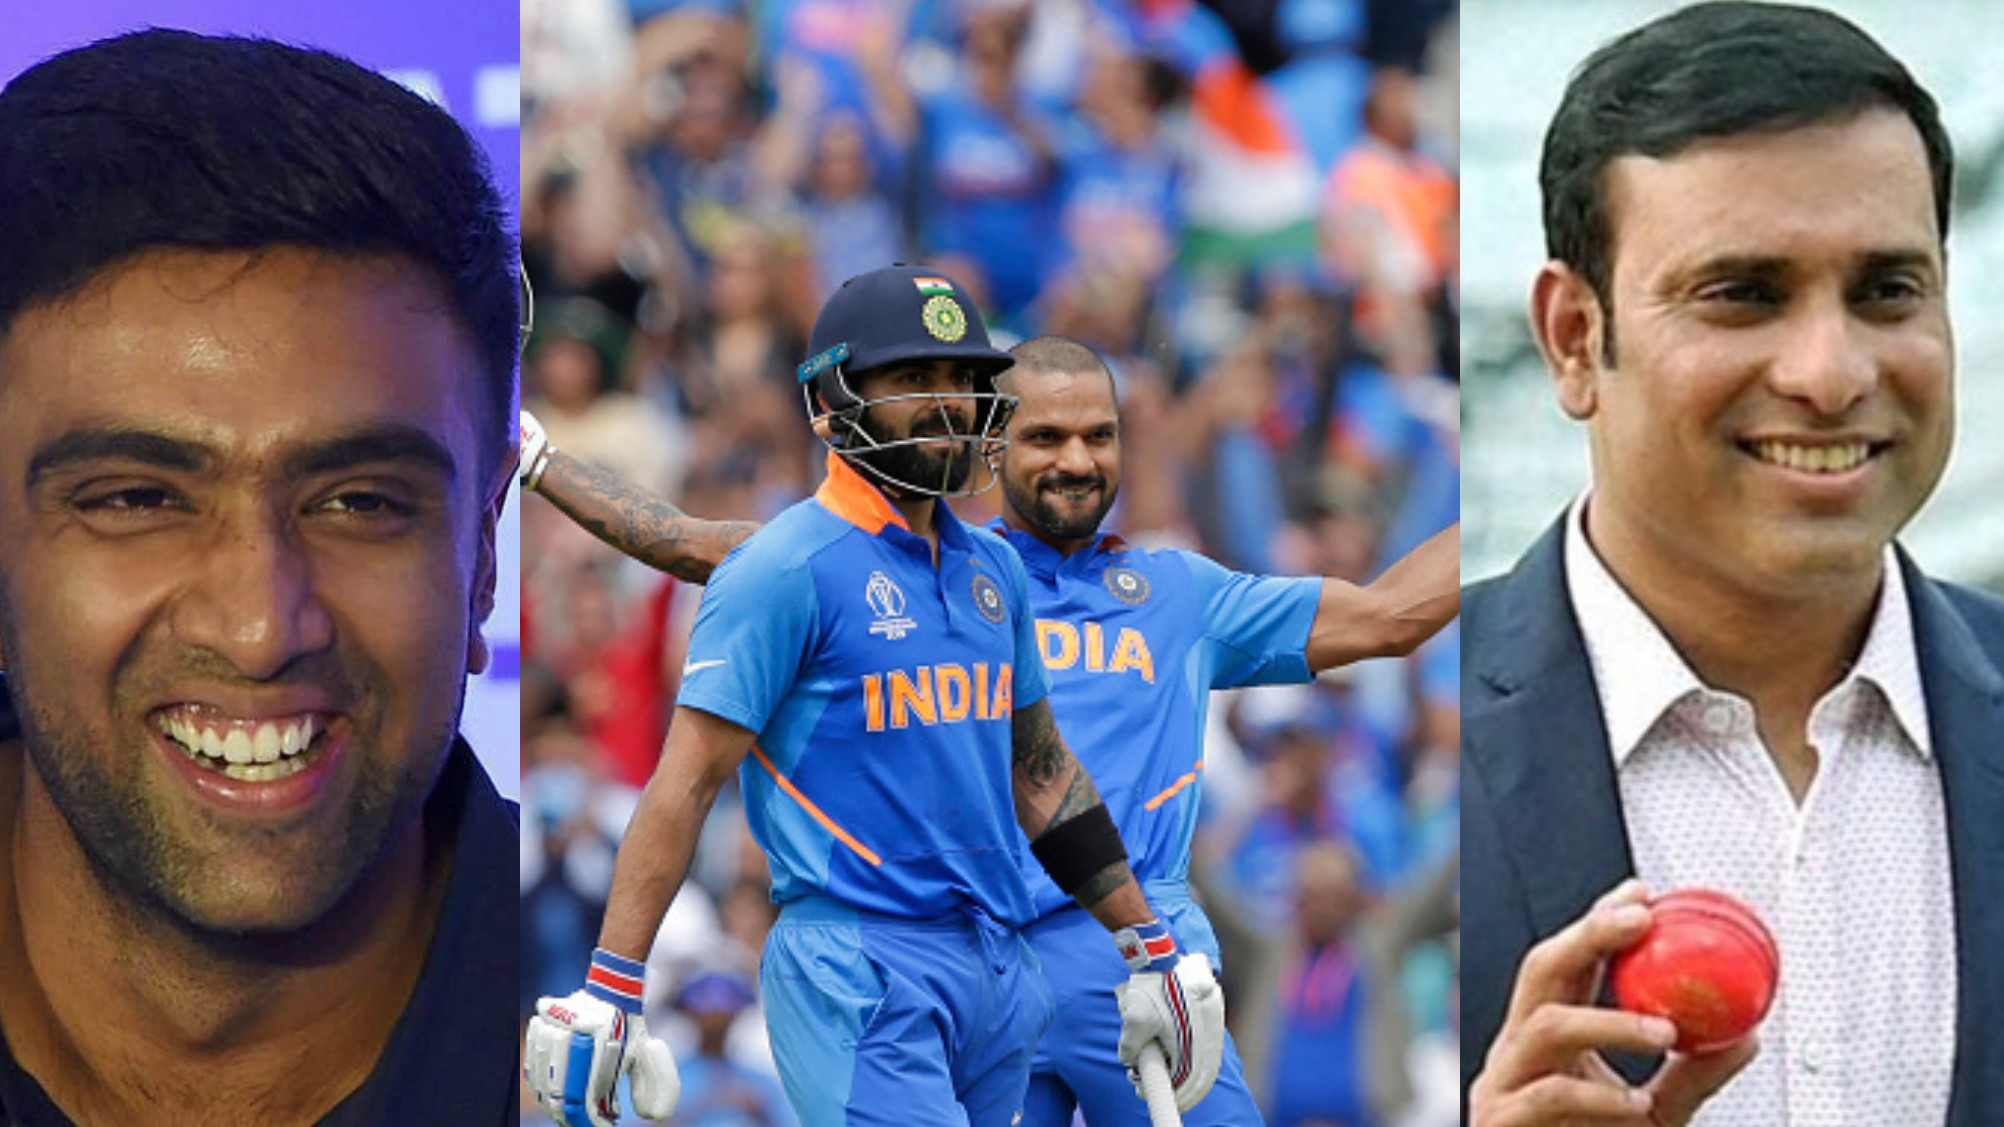 CWC 2019: Cricket fraternity lauds Dhawan century and Kohli, Rohit fifties as India puts 352 on board vs Australia